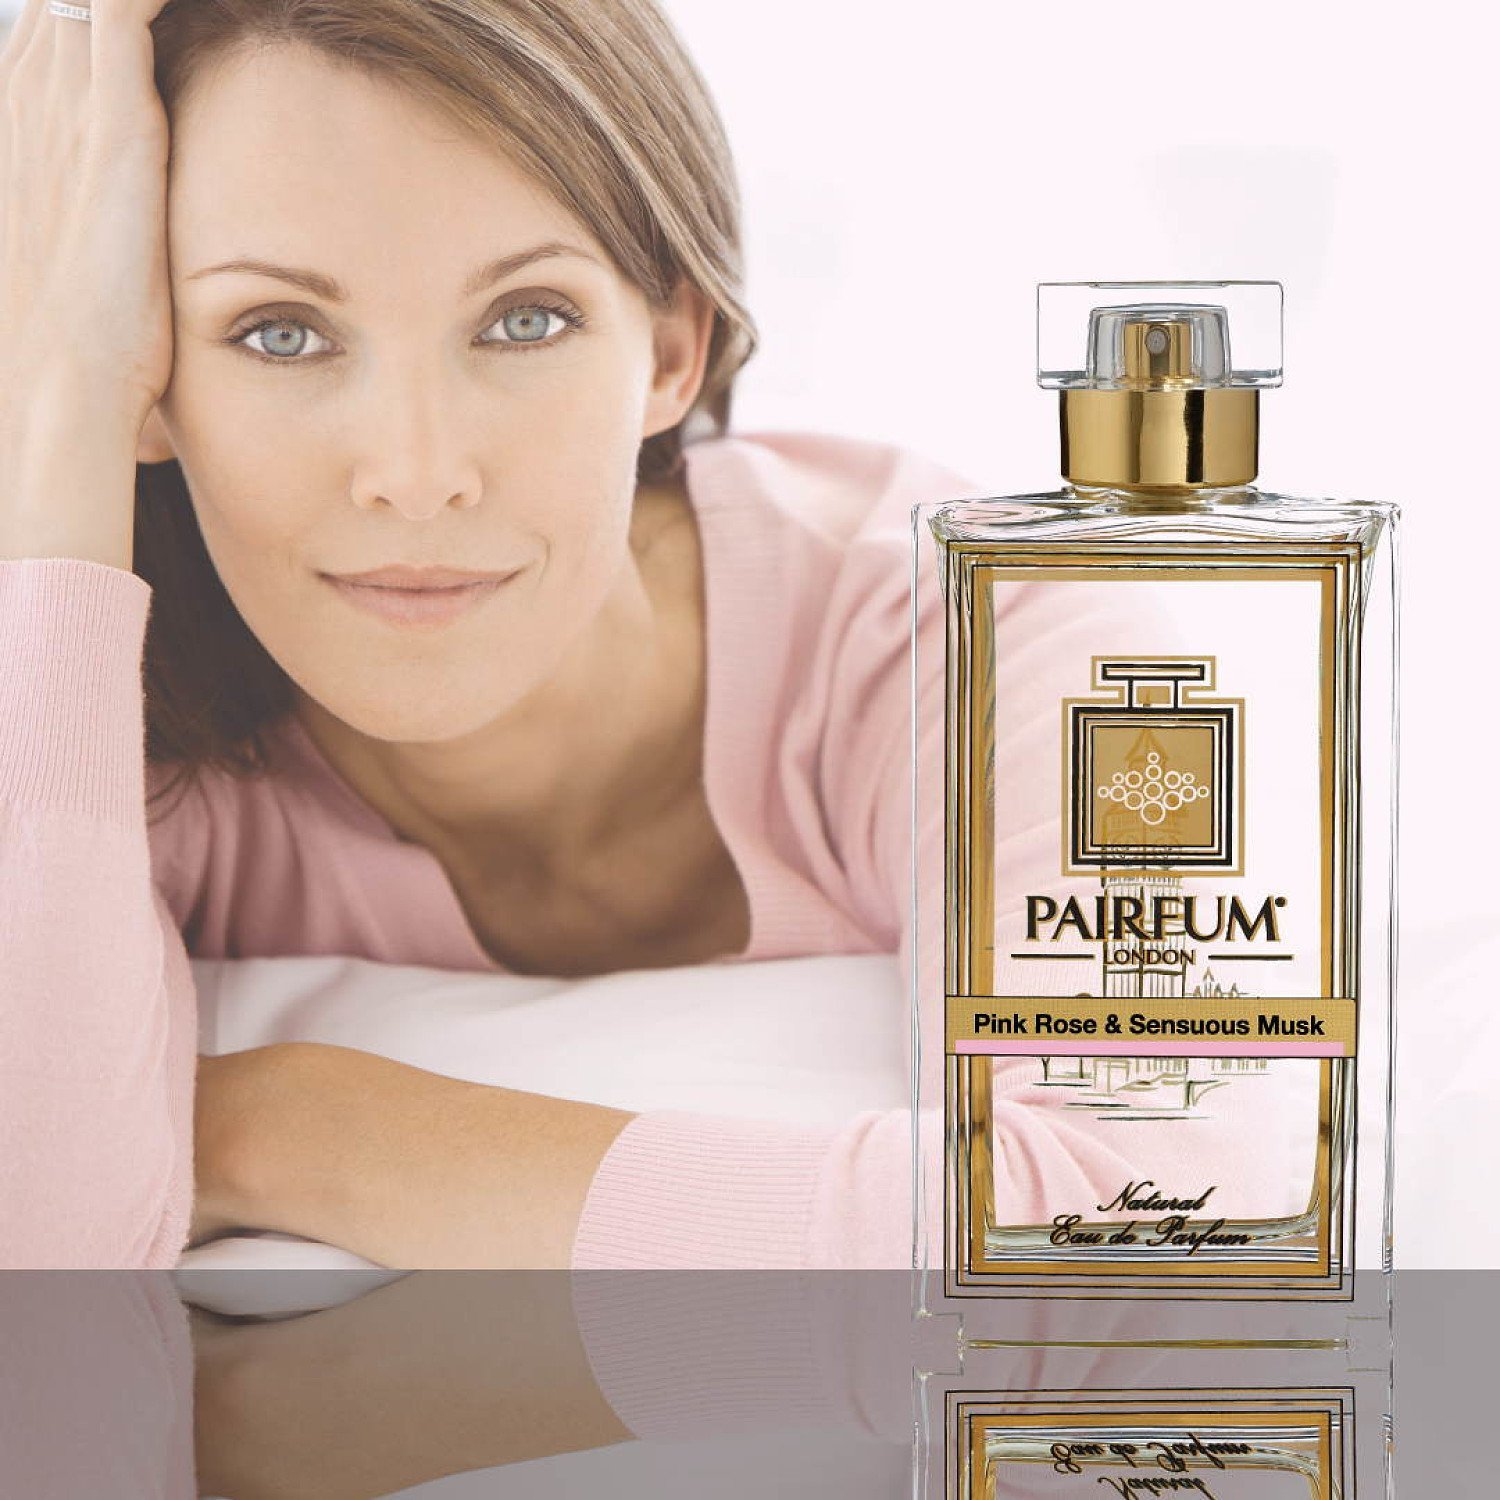 Send Mothersday Gifts: 20% OFF at Pairfum London